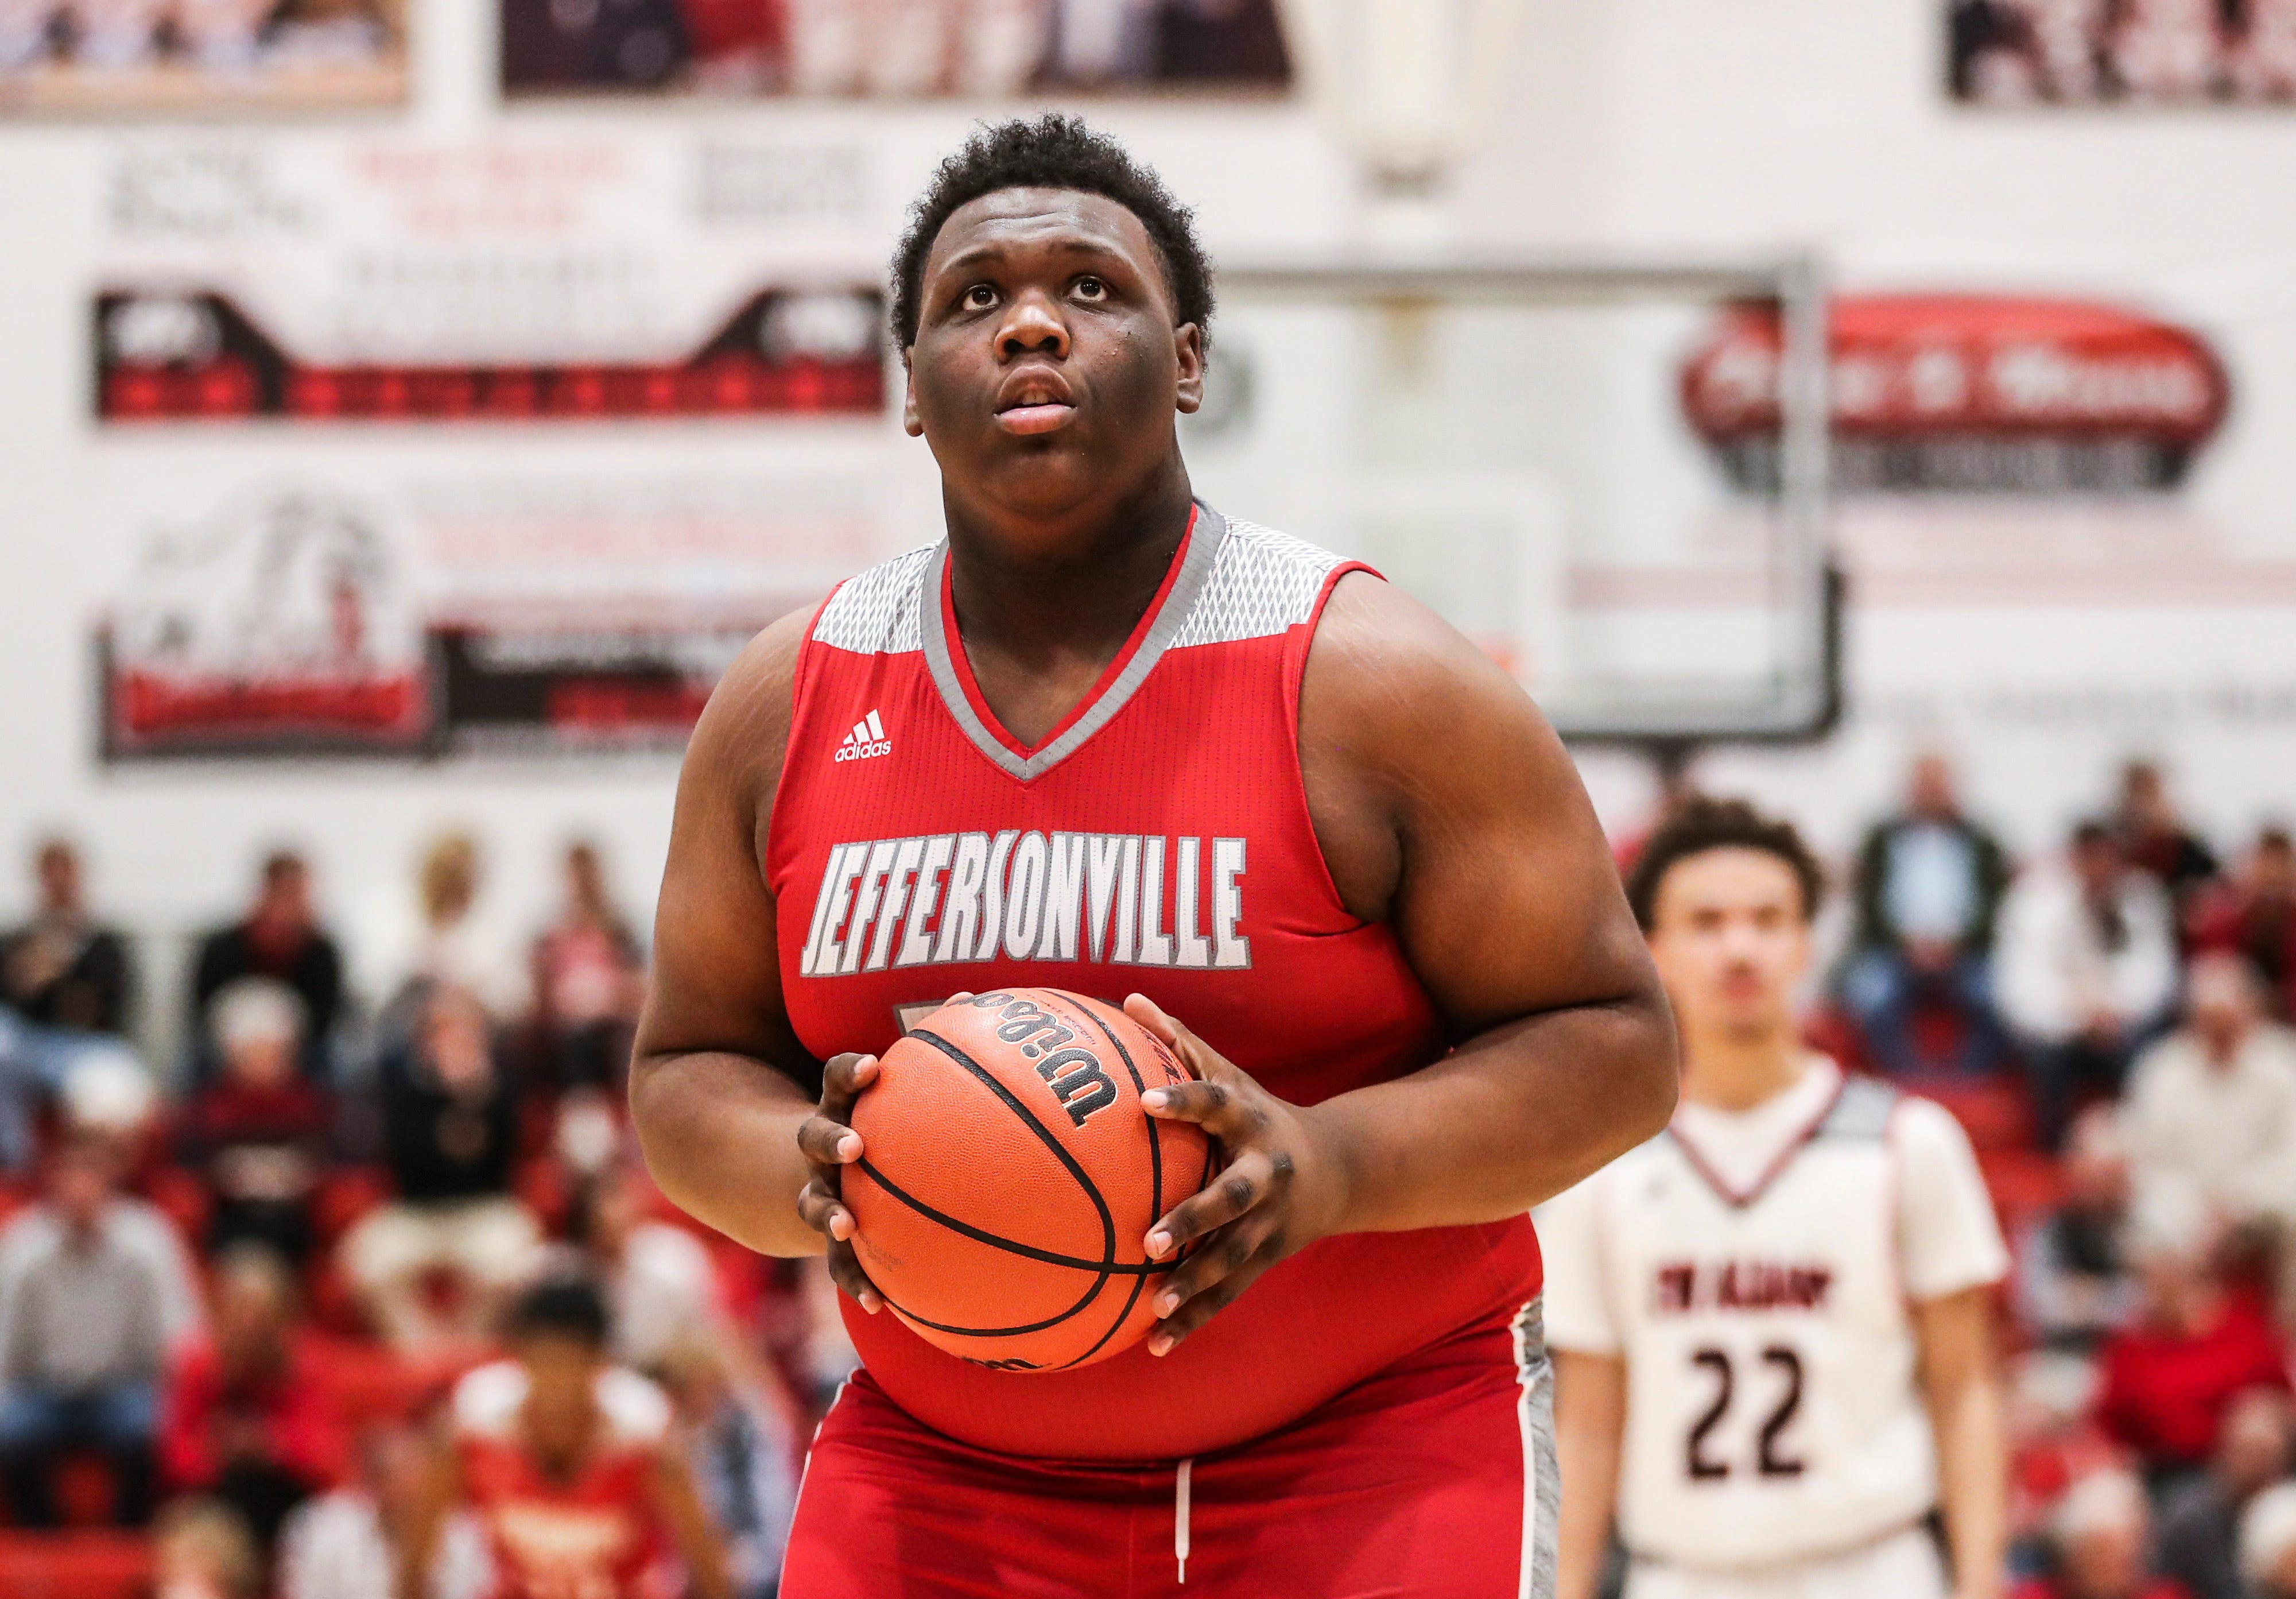 Jeffersonville Boys Basketball Player Survives A Heart Attack